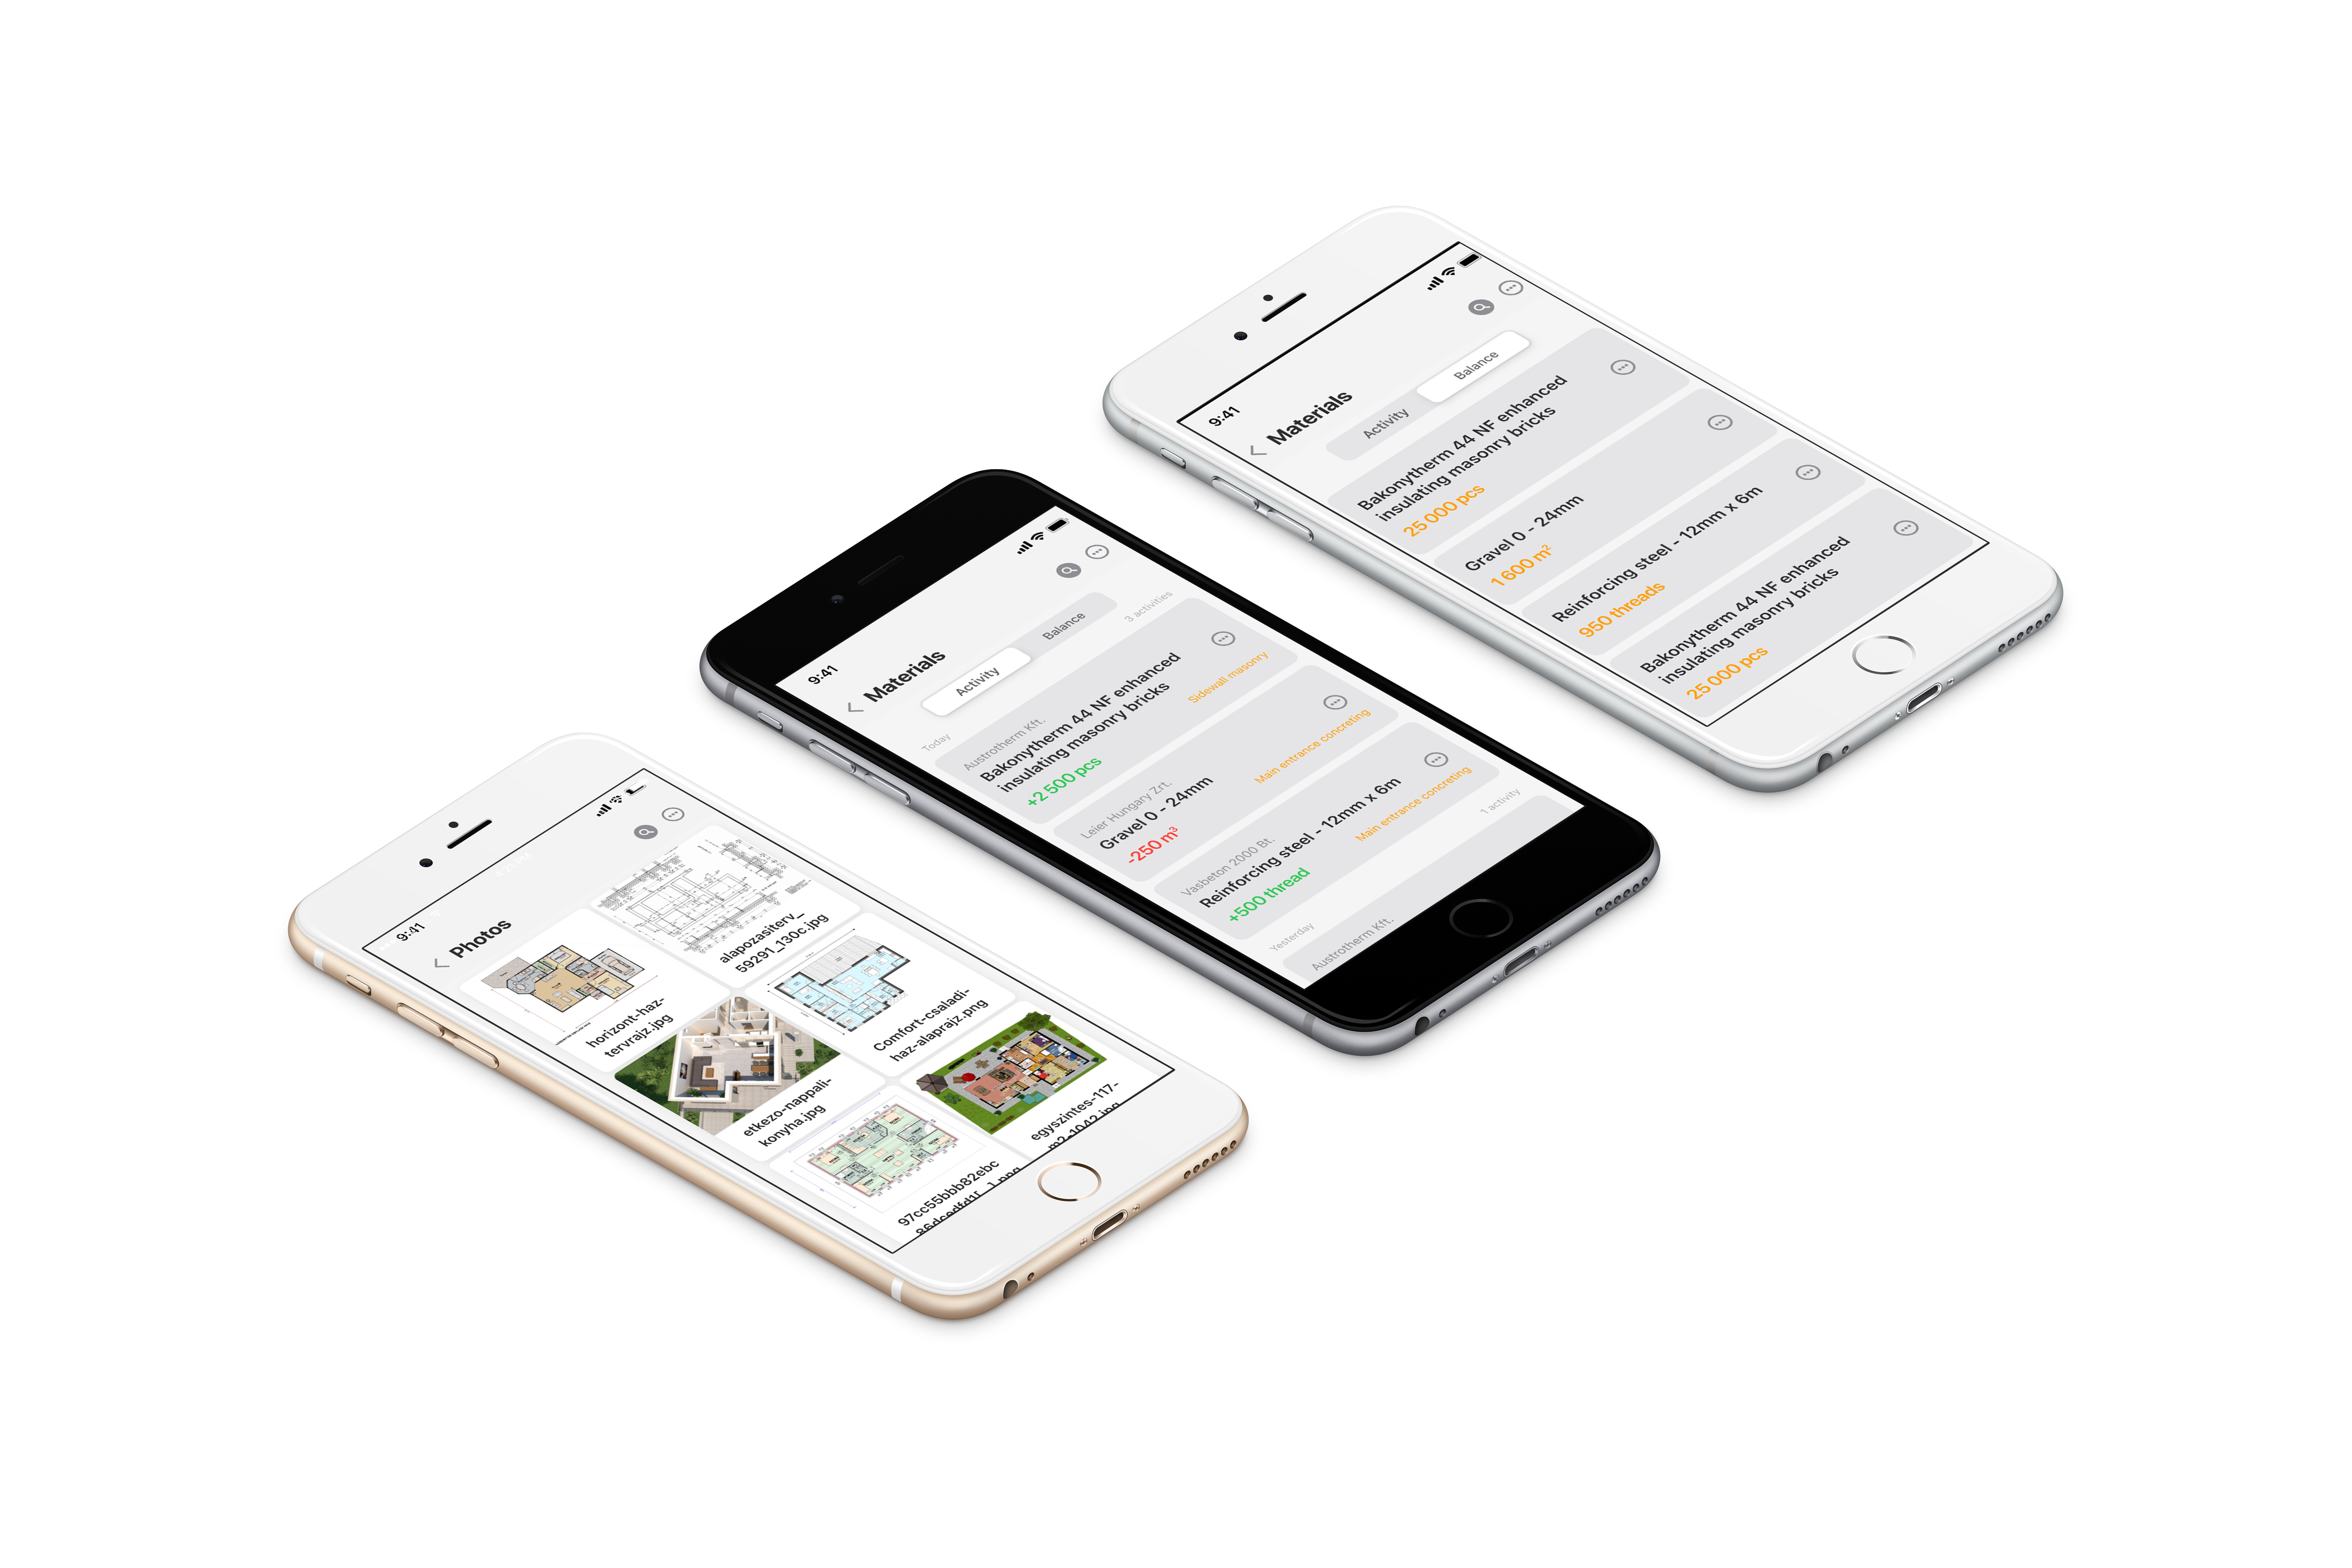 project management software material tracking feature on three iphone